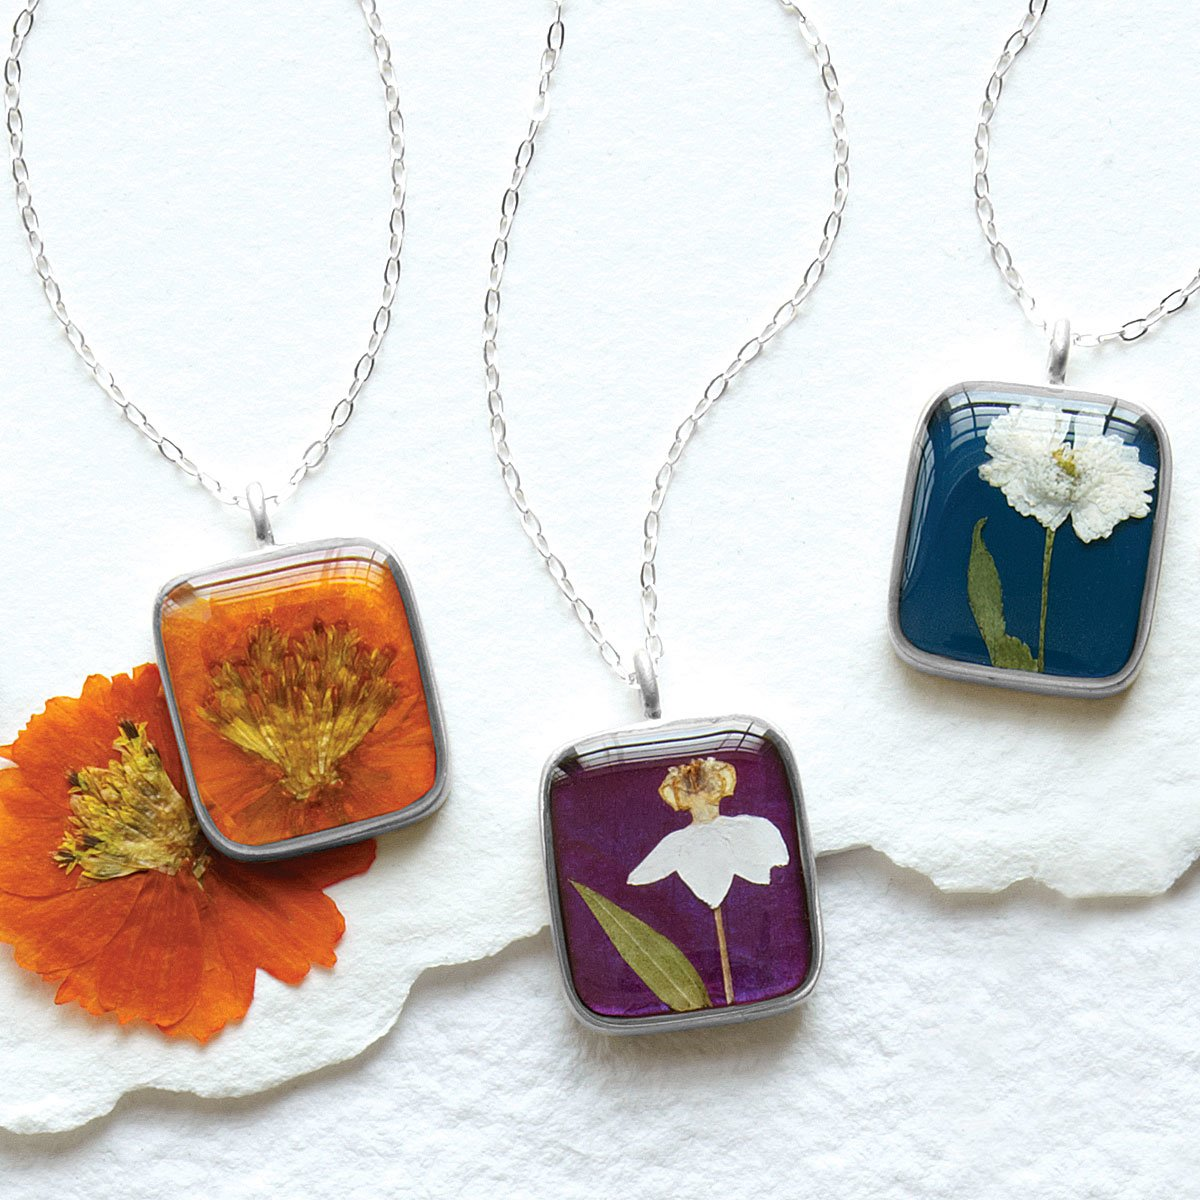 Christmas Gift Ideas For The Wife: Birth Month Flower Necklace